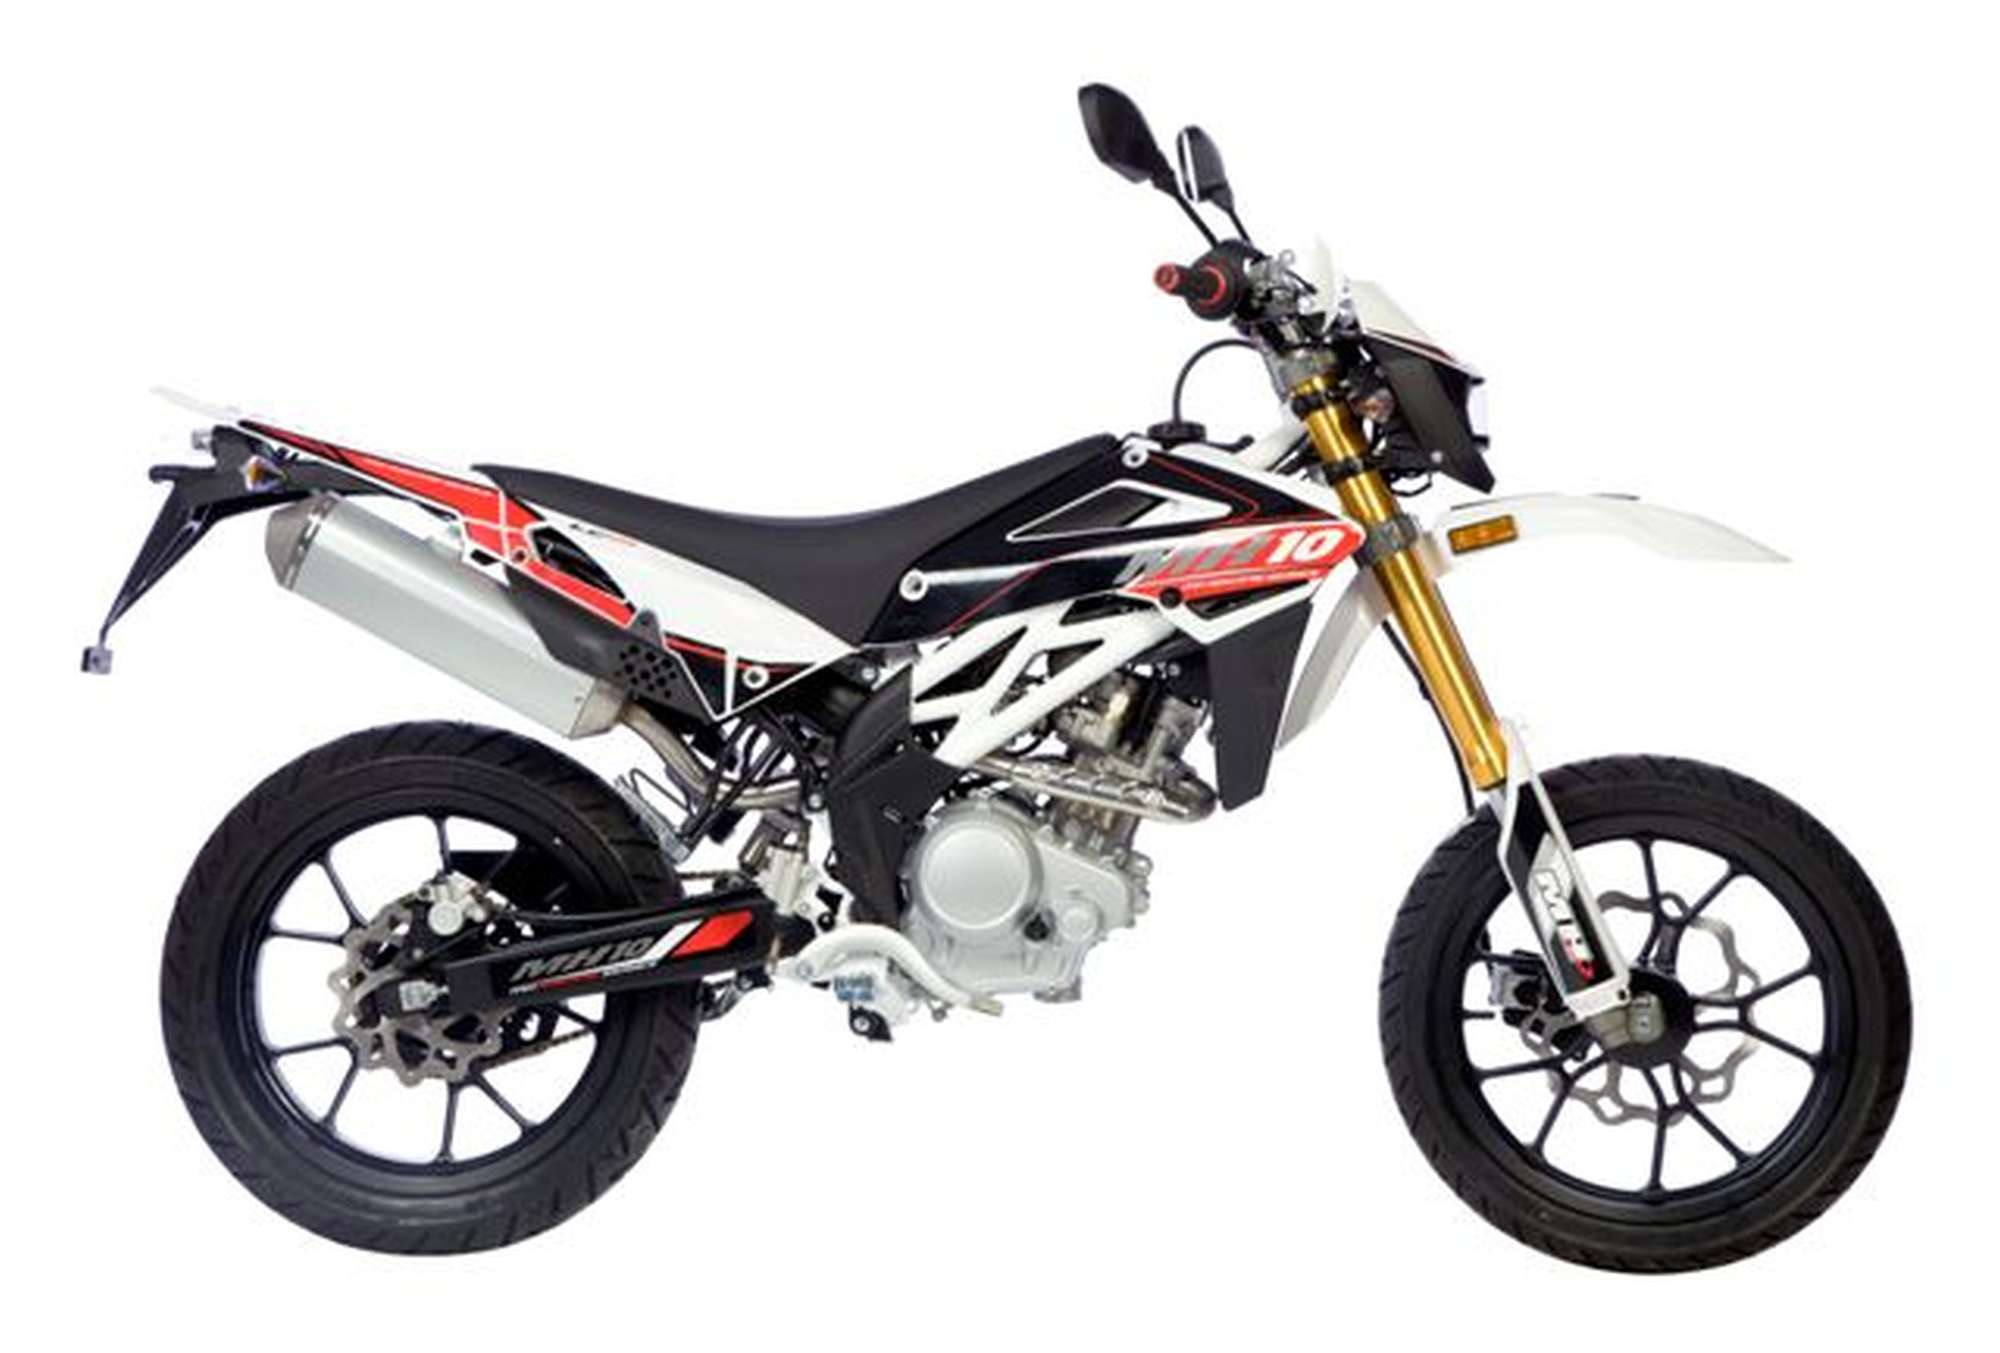 Motorhispania RYZ 49 Supermotard images #112562